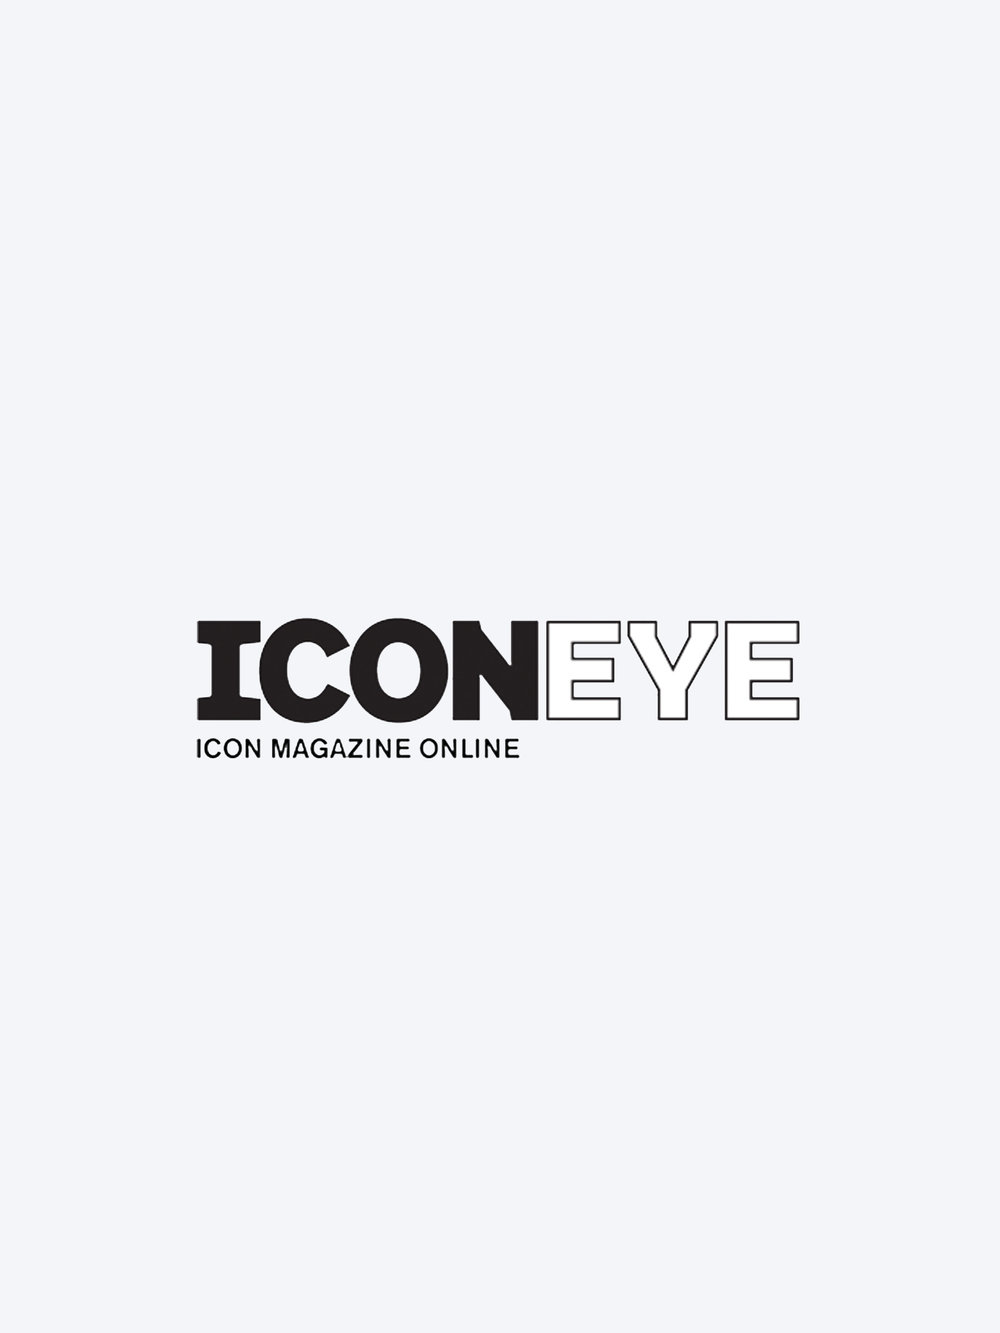 ICONEYE – Jun 15